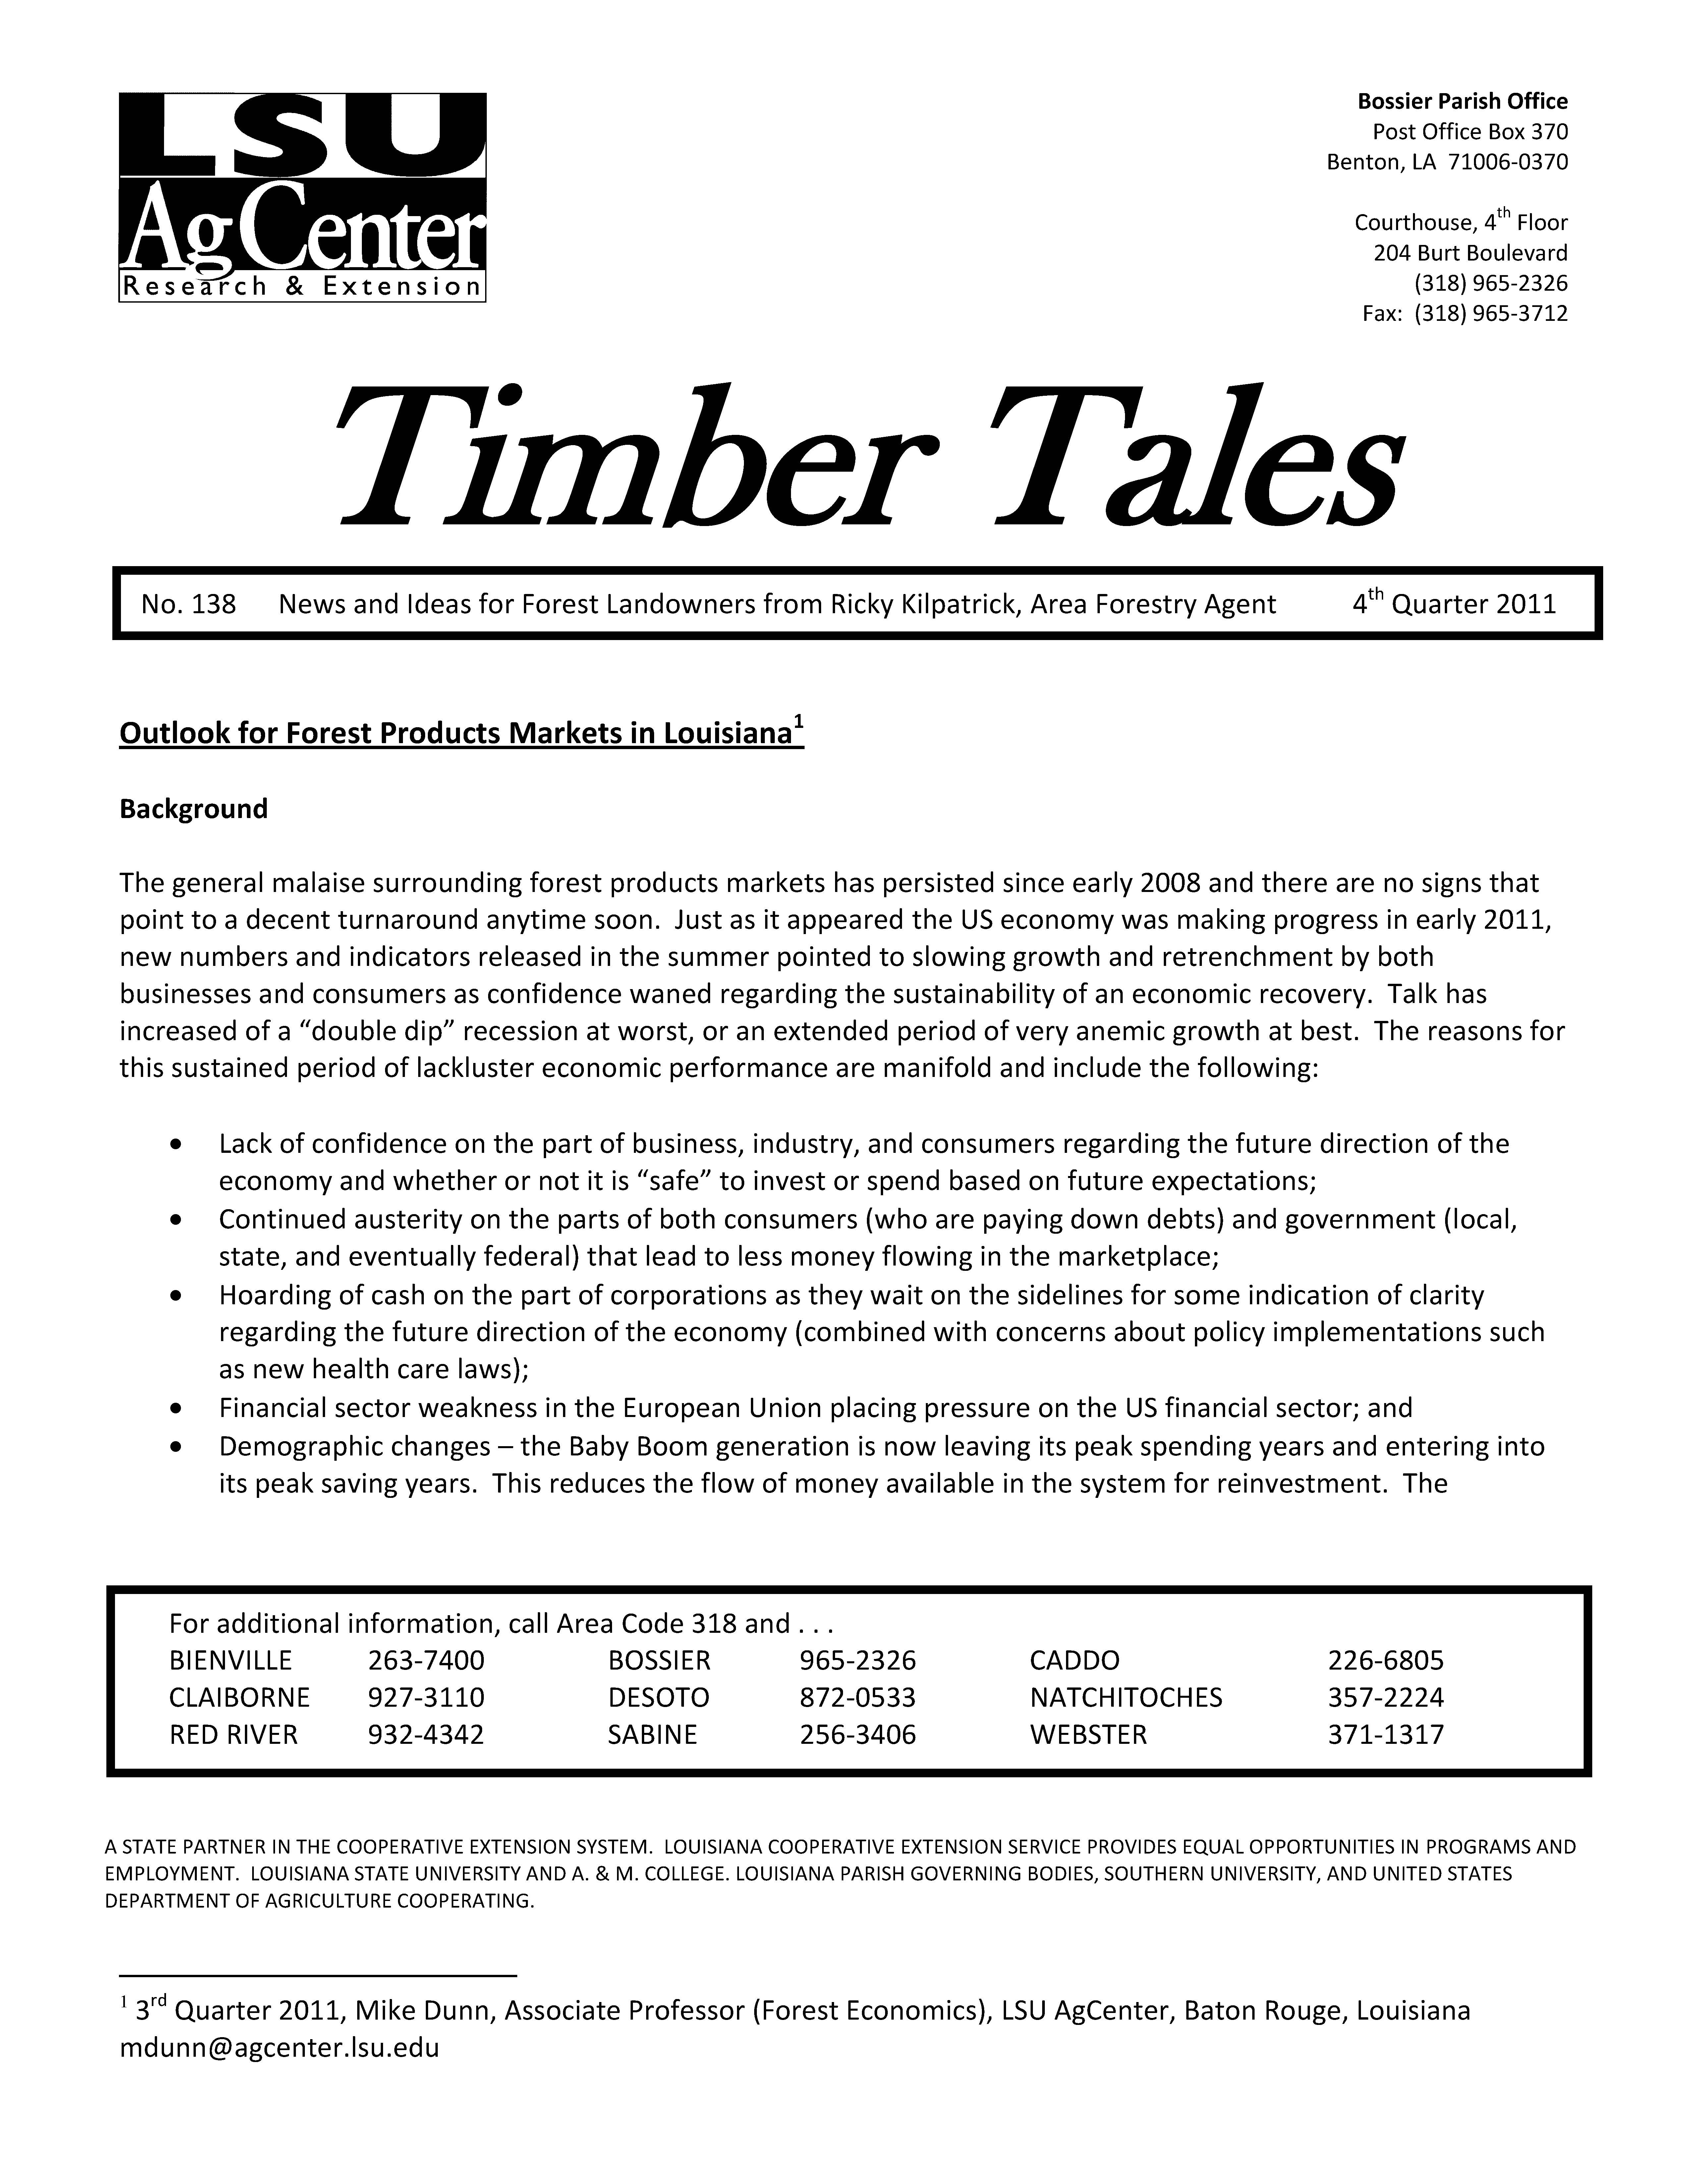 2011 Timber Tales Newsletters